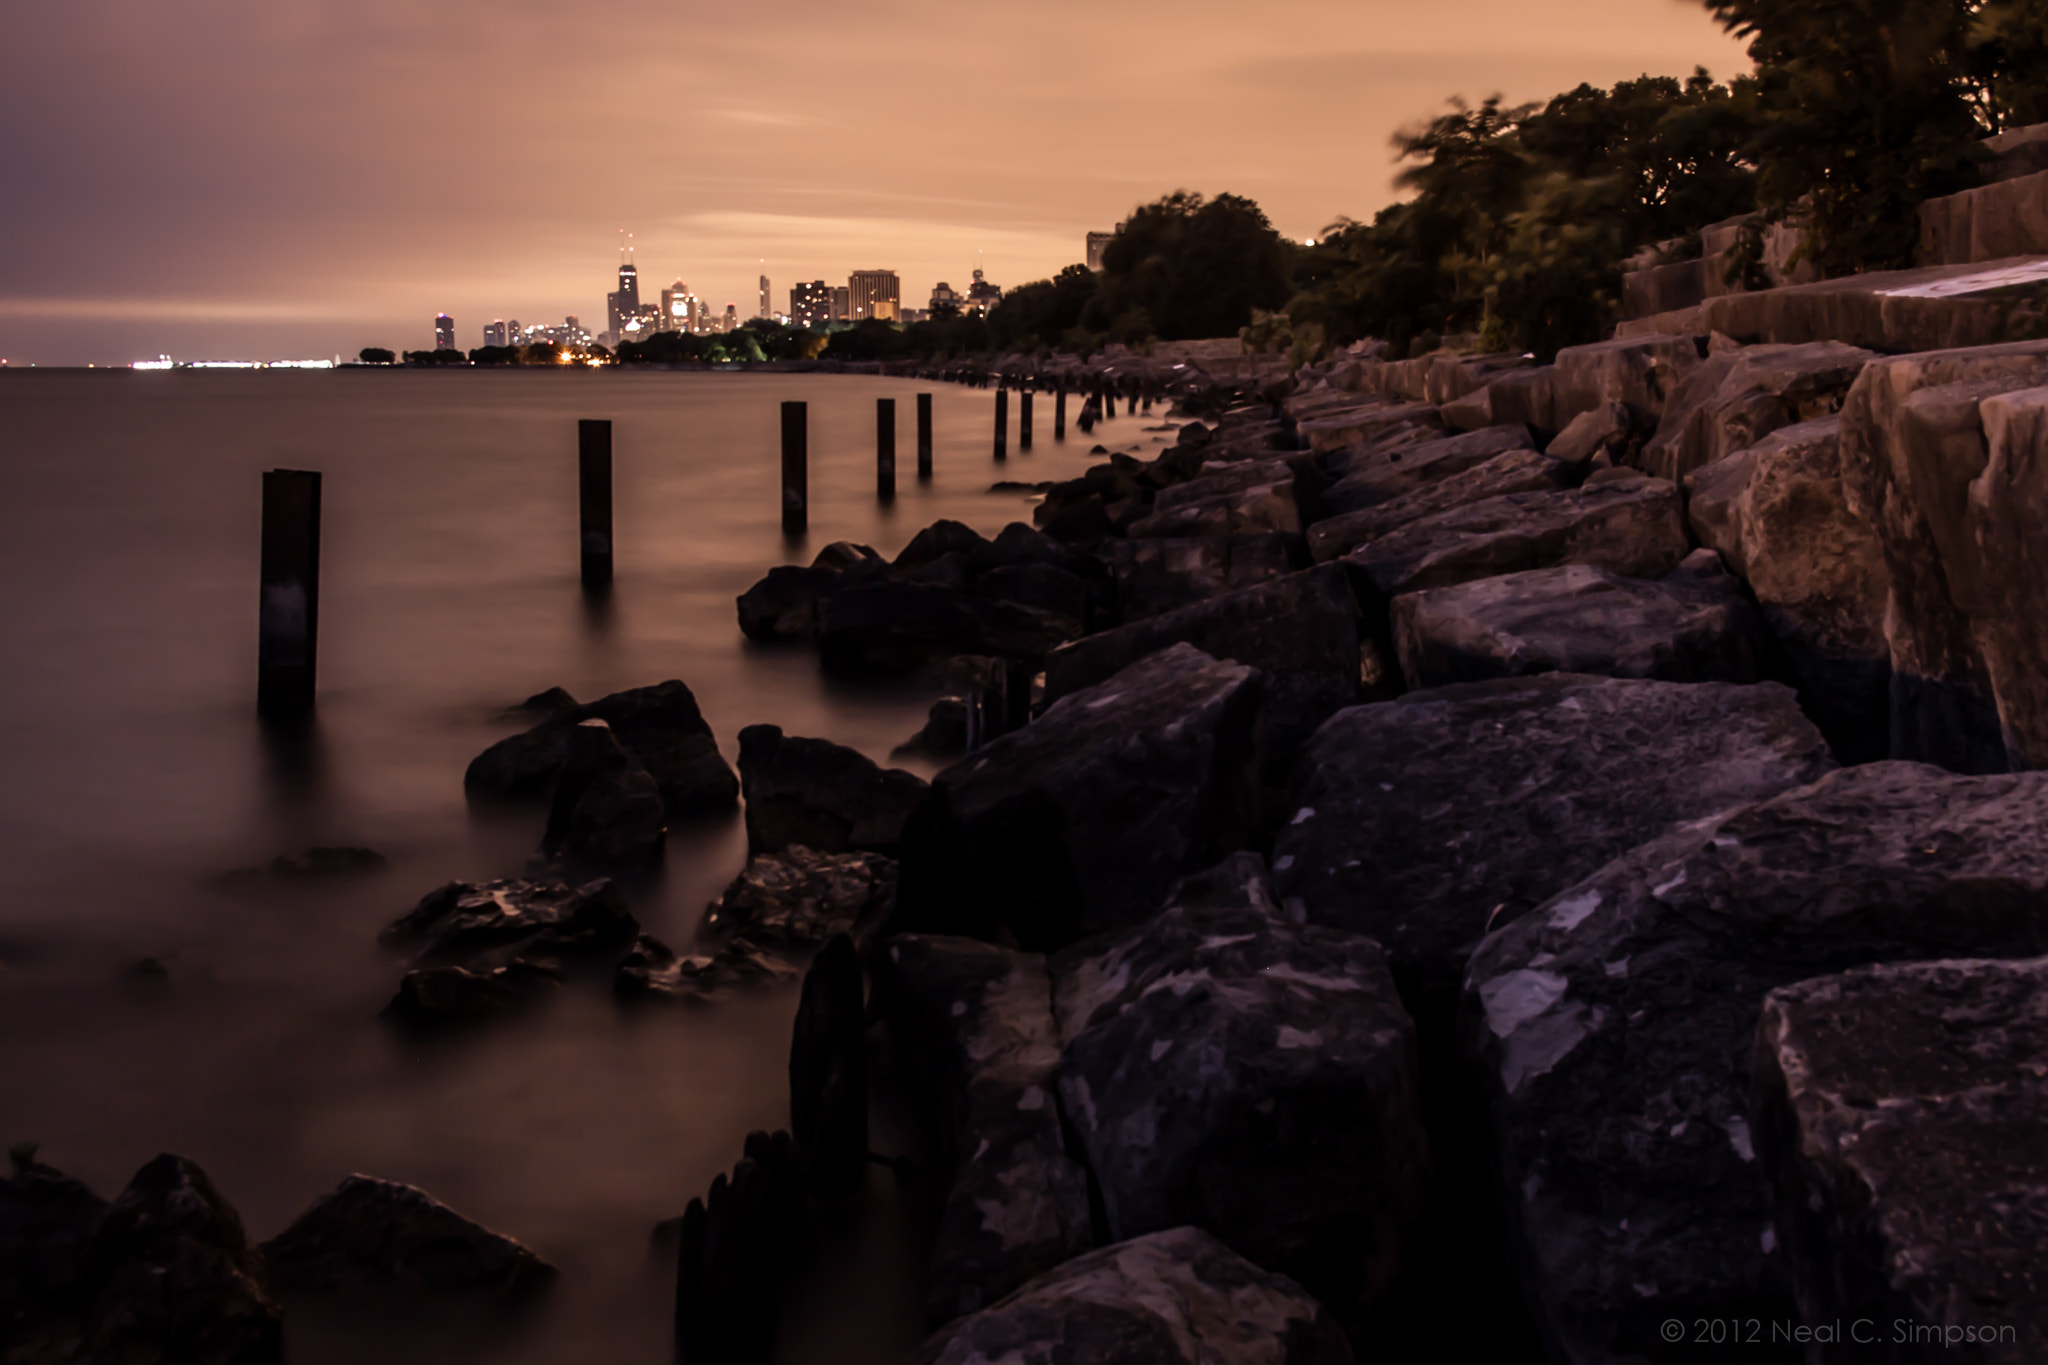 Photograph Chicago, Montrose Harbor, 4:32 am by Neal Simpson on 500px